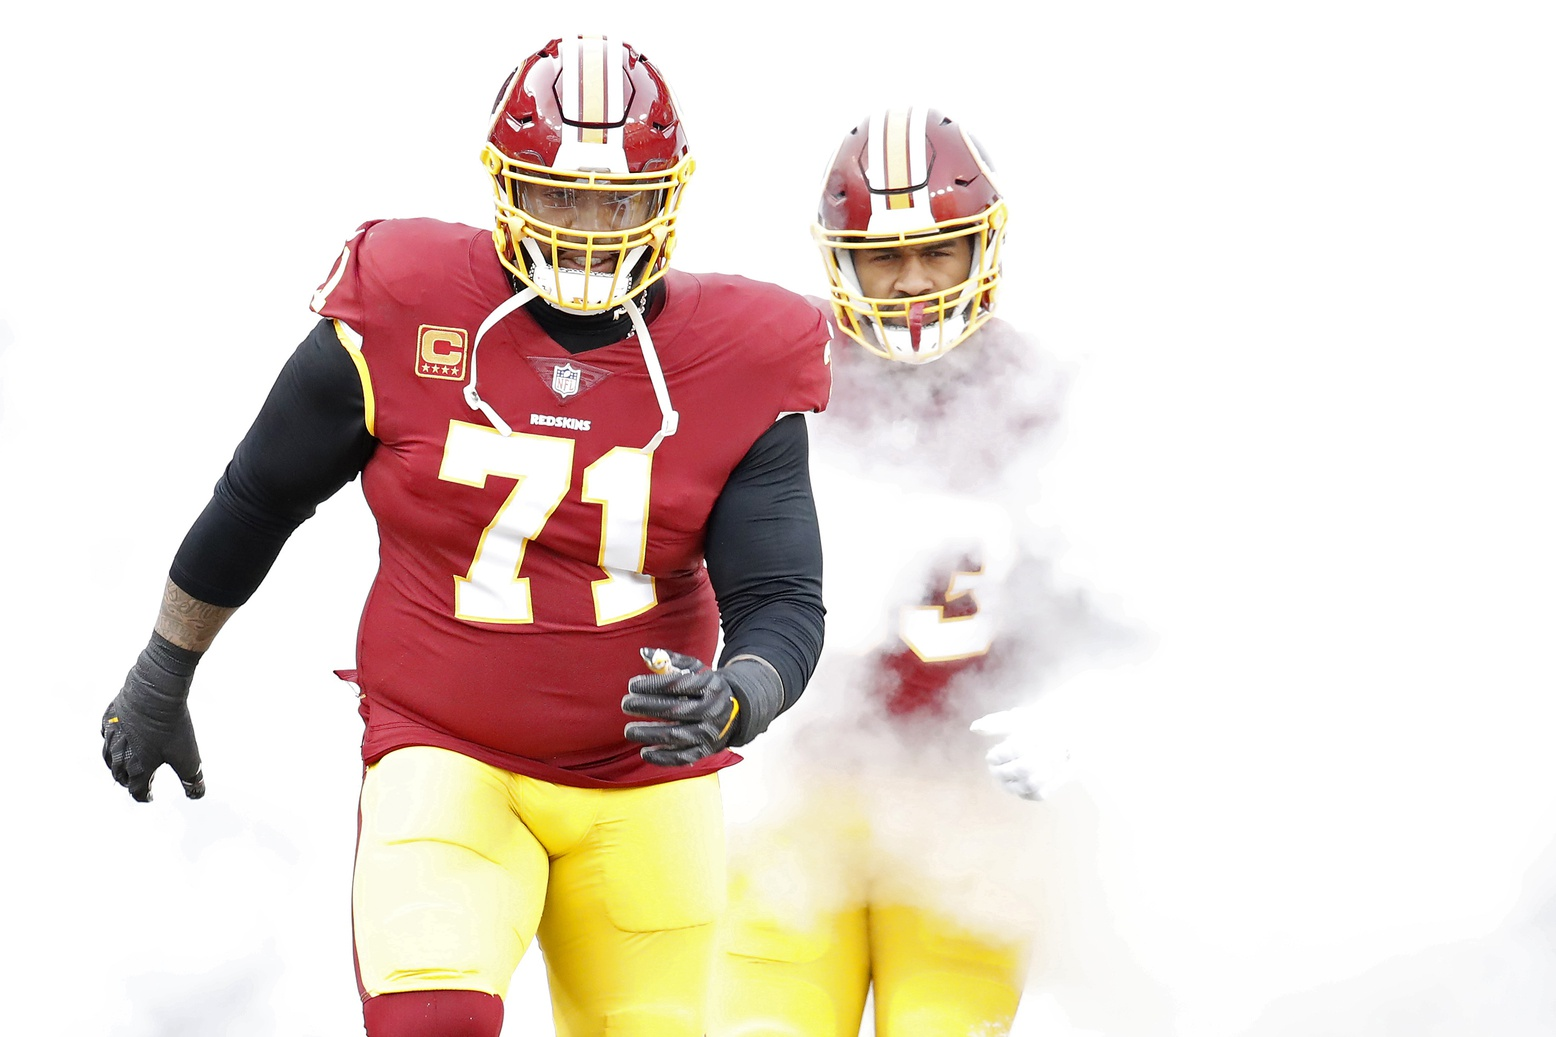 Rumors: Redskins Trent Williams fed up with medical staff, wants to leave